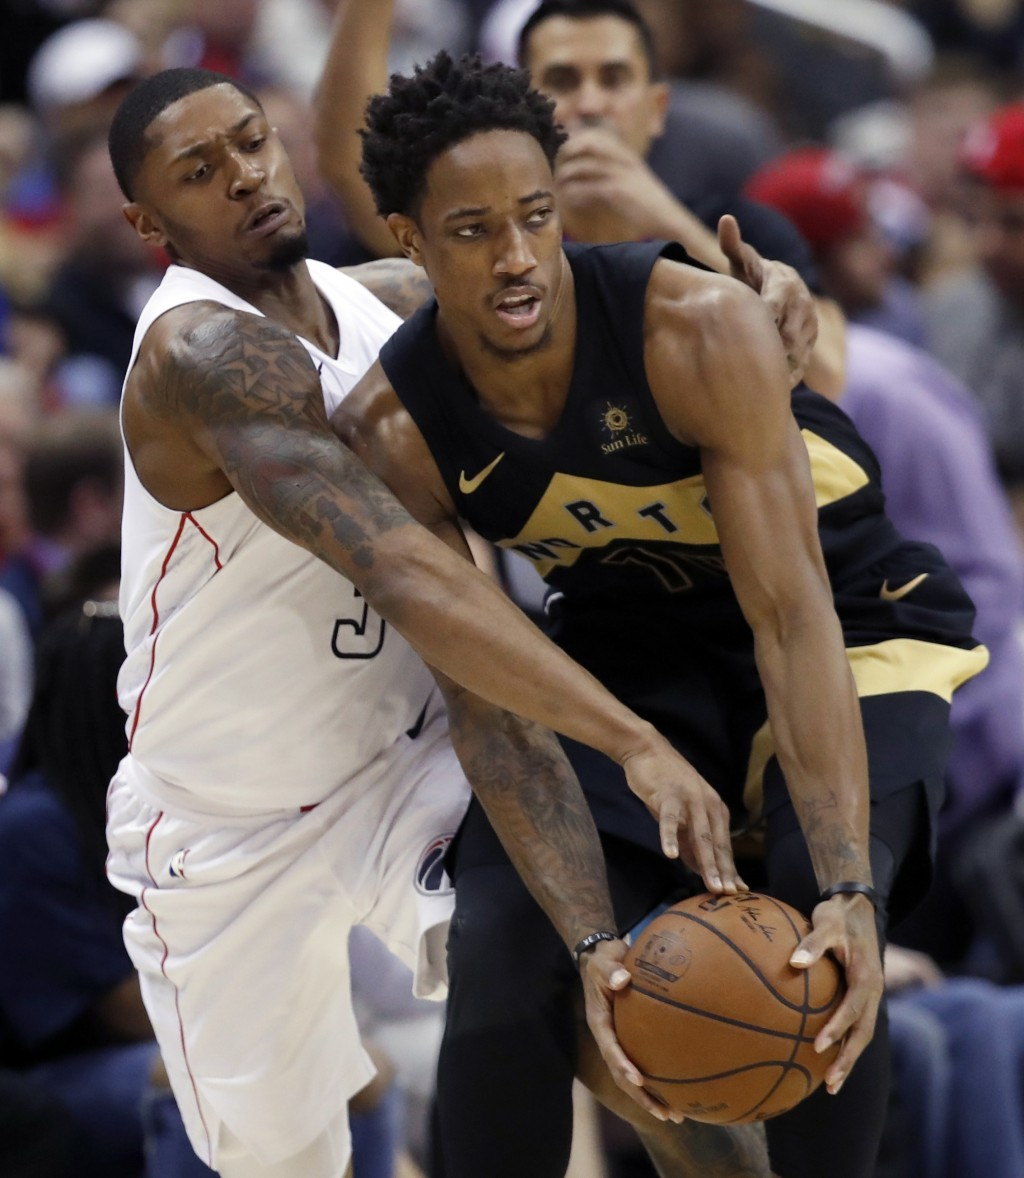 Washington Wizards guard Bradley Beal, left, reaches for the ball in the hands of Toronto Raptors guard DeMar DeRozan during the second half of Game 6...